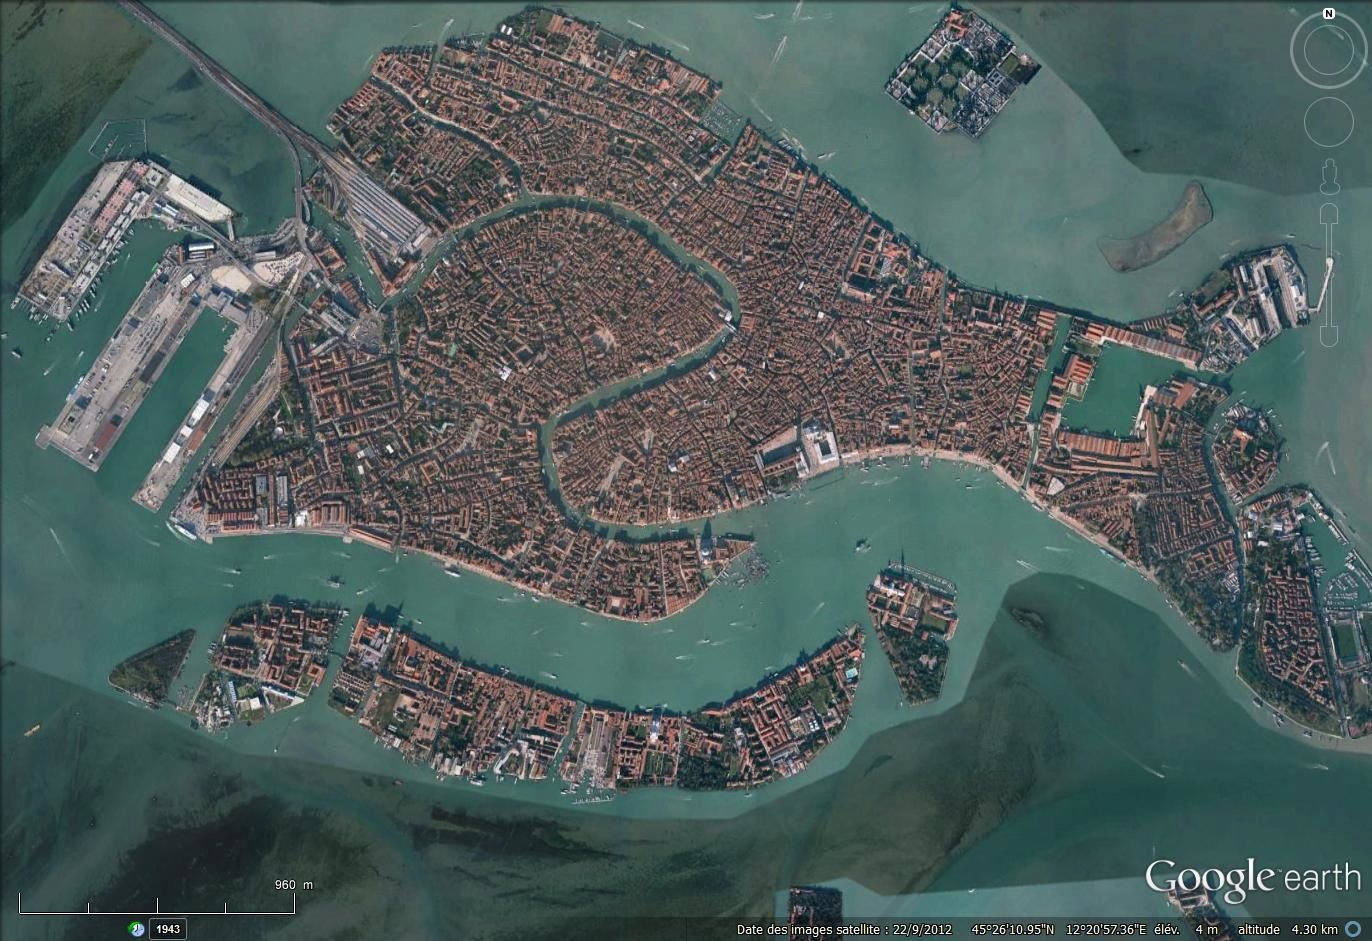 Venise sur Google earth